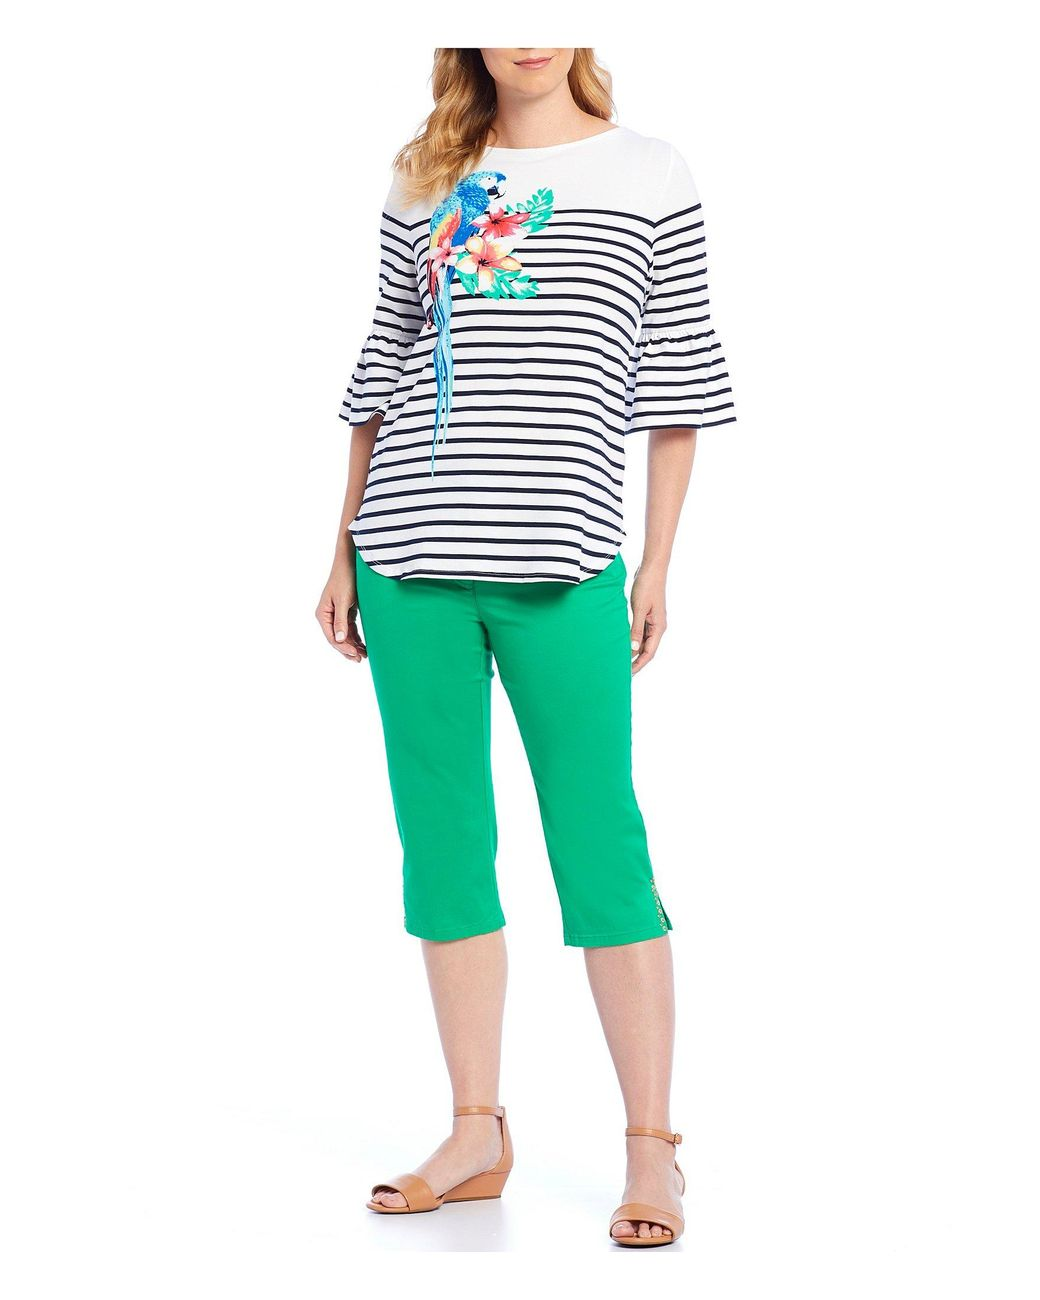 6f00e9441480 Ruby Rd. Striped Parrot Placement Print Embellished Bateau Neck Top in  White - Lyst